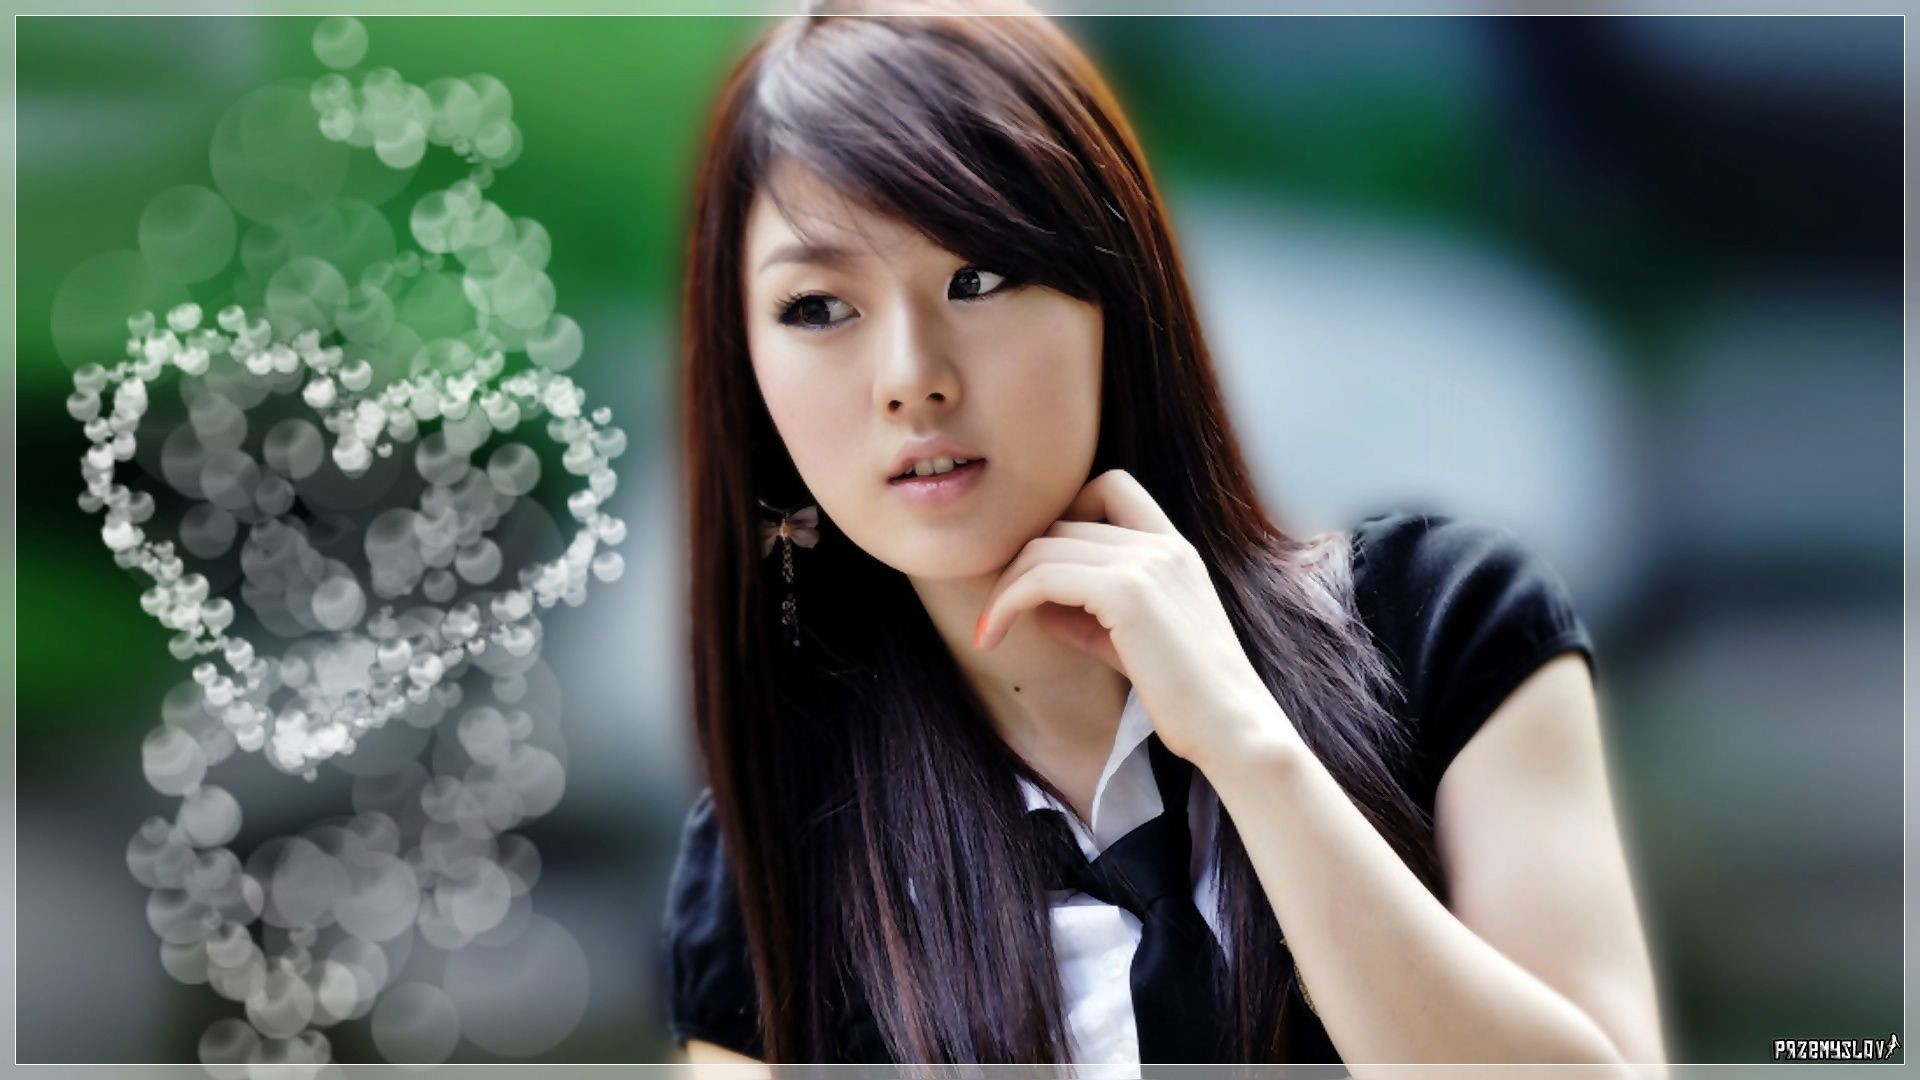 Cute Korean Wallpapers 69 Background Pictures